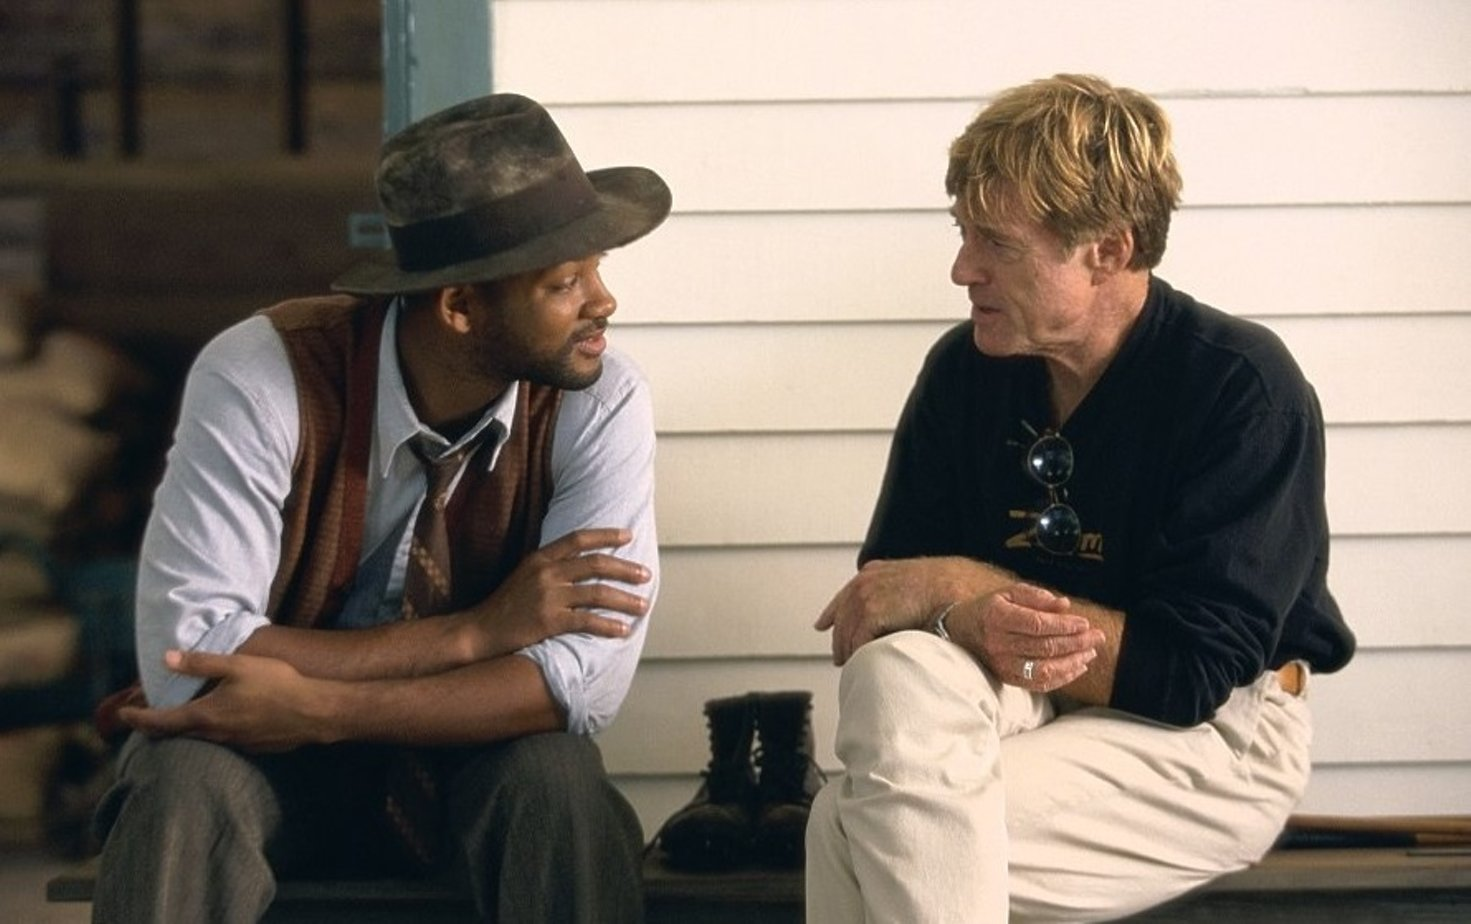 the legend of bagger vance Critics consensus: despite the talent involved in the legend of bagger vance, performances are hindered by an inadequate screenplay full of flat characters and bad dialogue also, not much happens, and some critics are offended by how the film glosses over issues of racism.